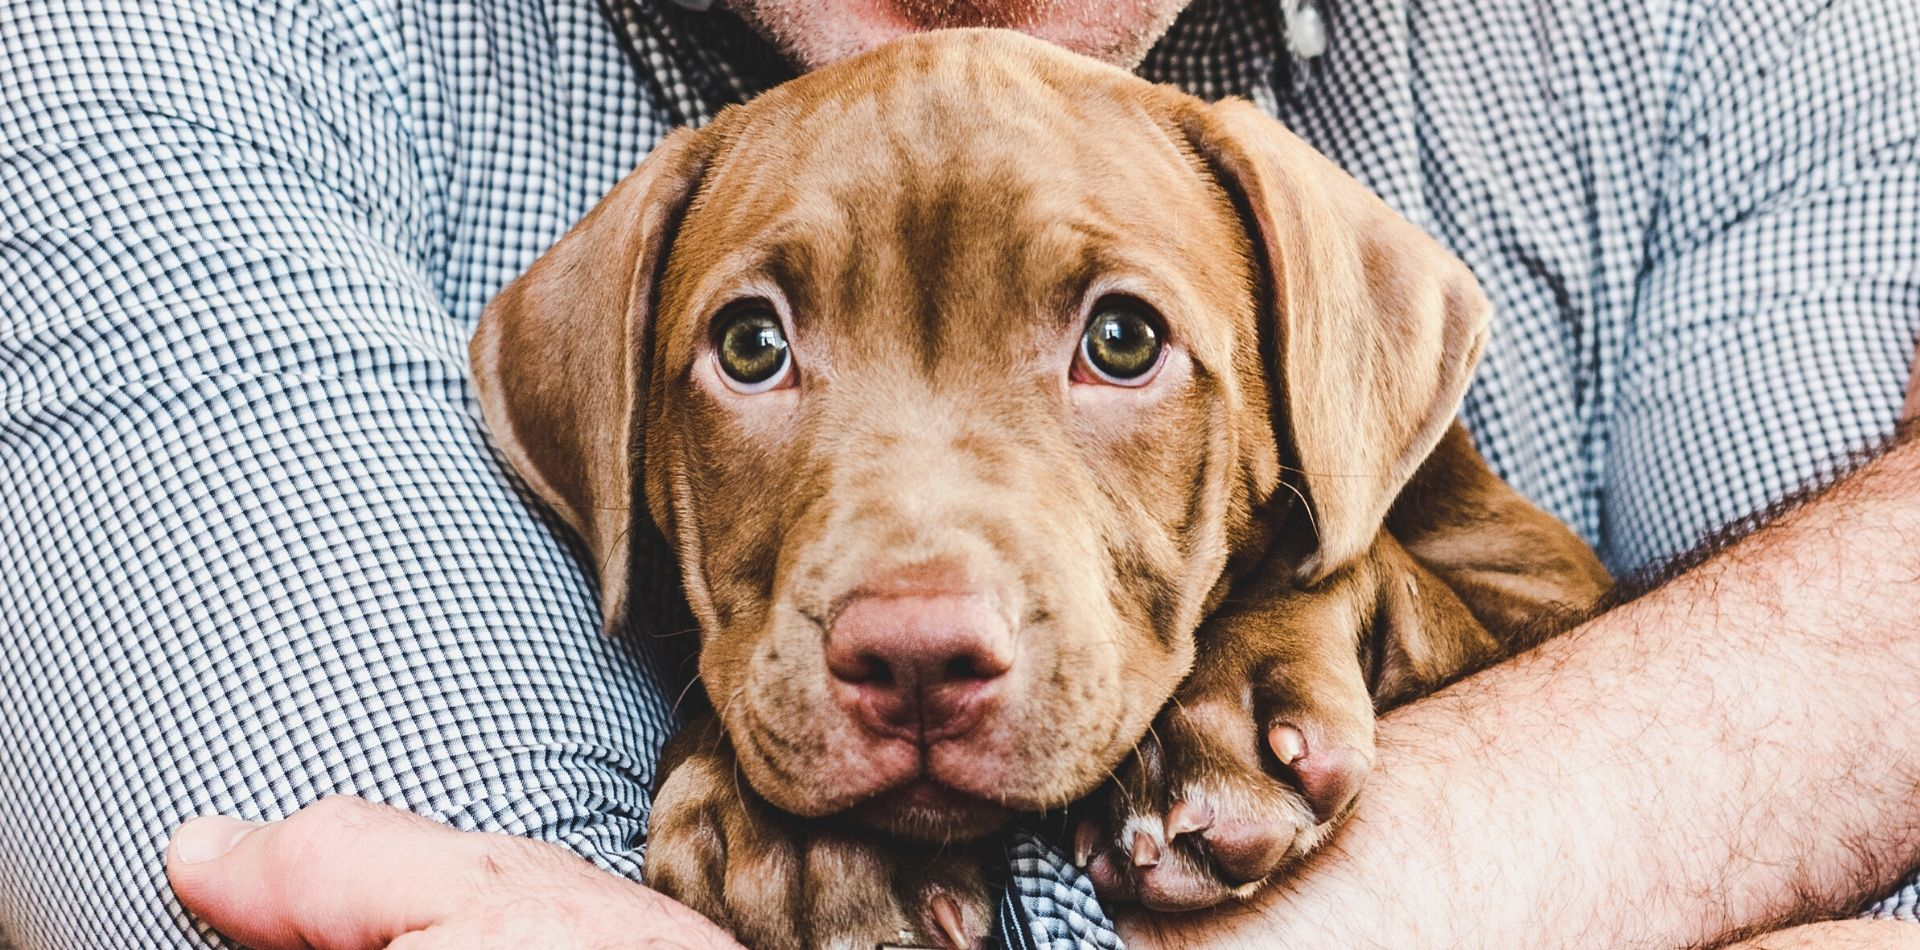 Brown lab puppy in a man's arms